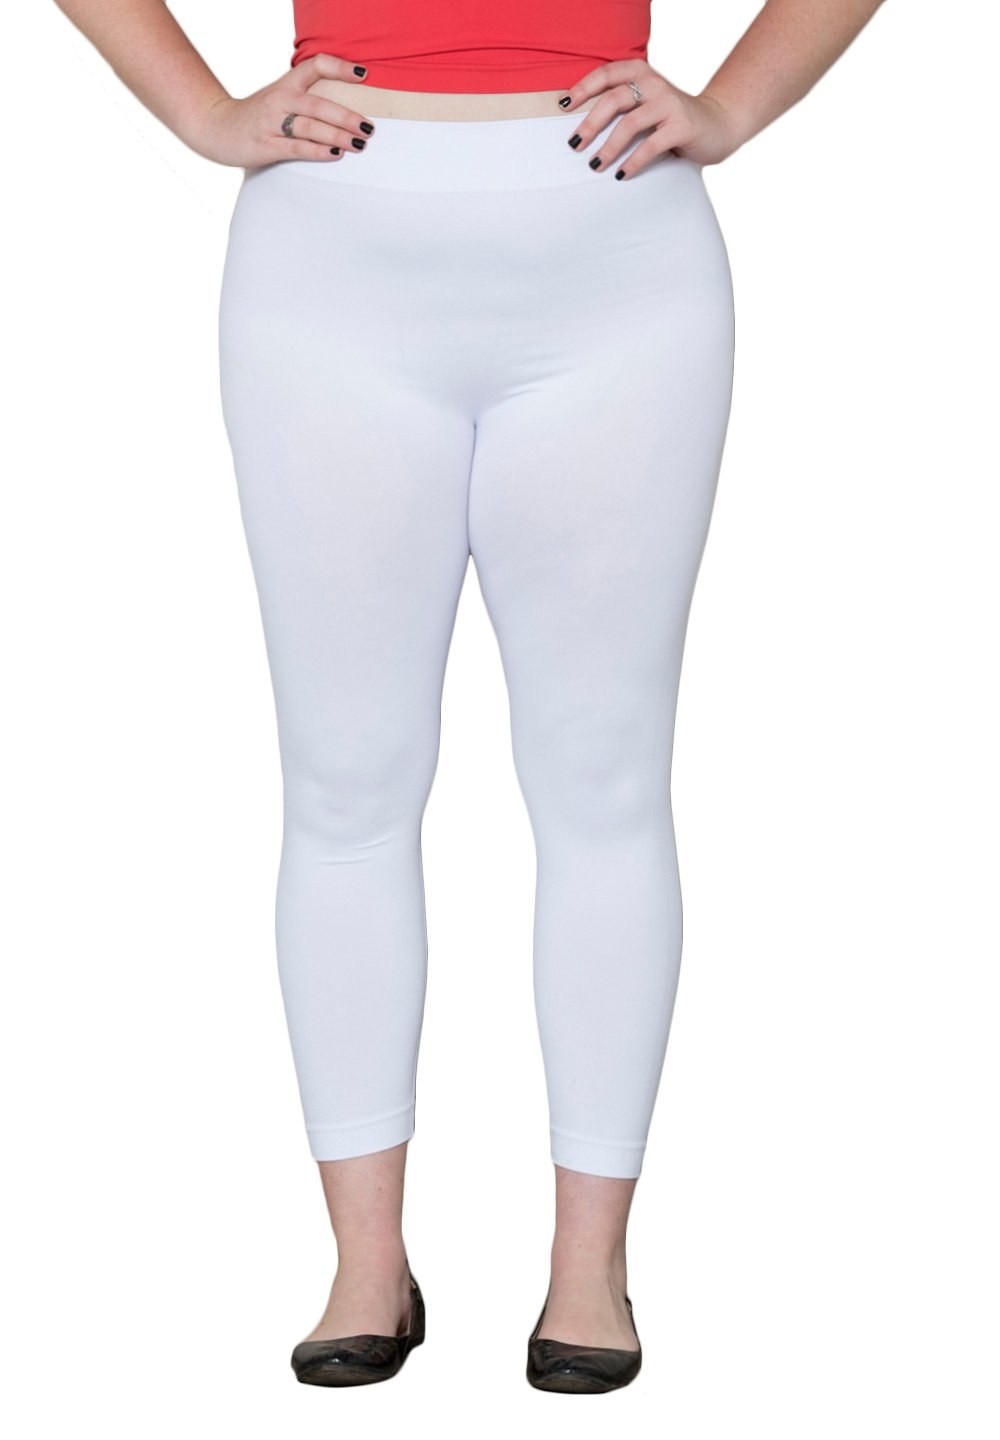 SWAK Designs Womens Plus Size At waist Wide Casual Seamless Leggings